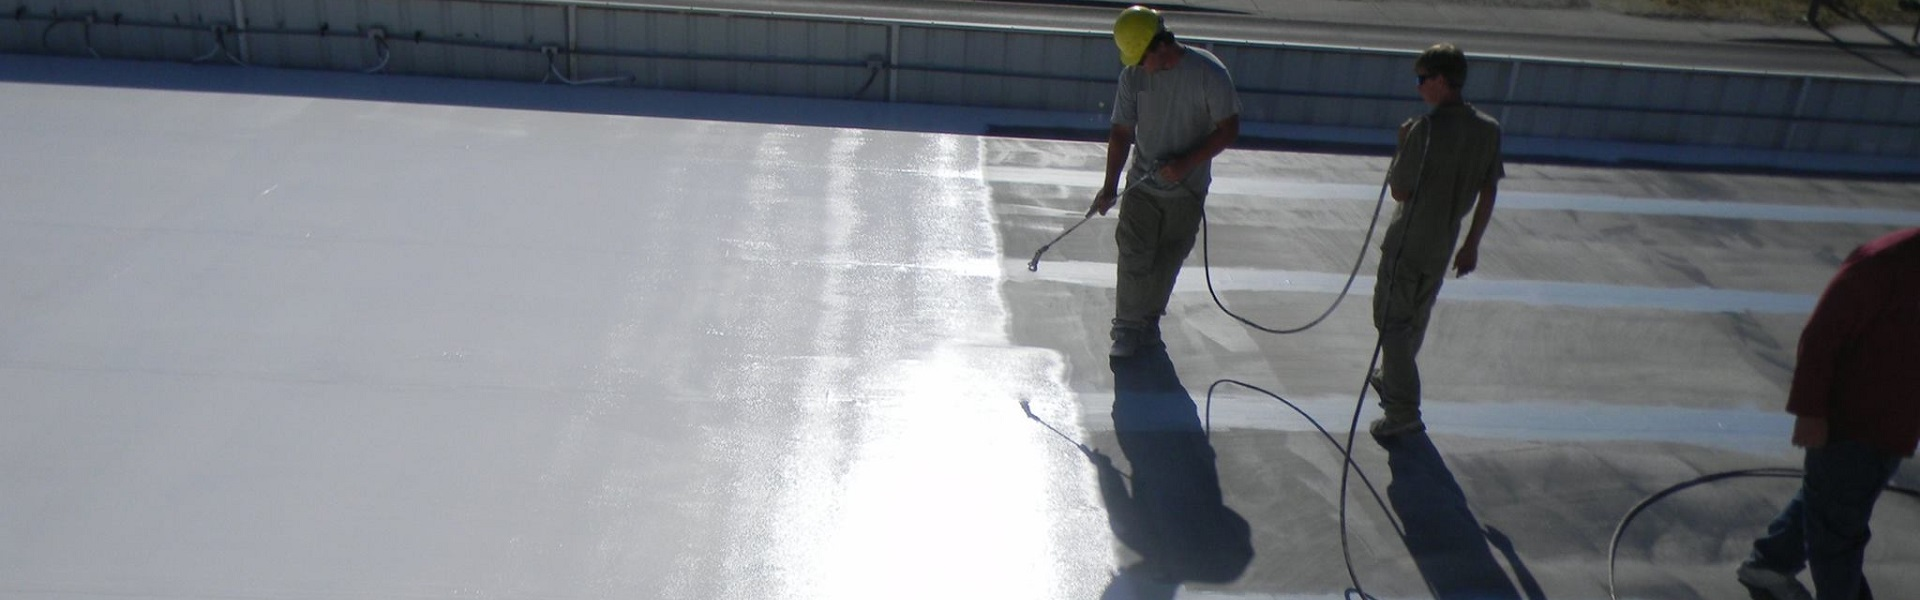 Spray On Silicone Roof Coating Houston - FLAT ROOF REPAIR SERVICE HOUSTON